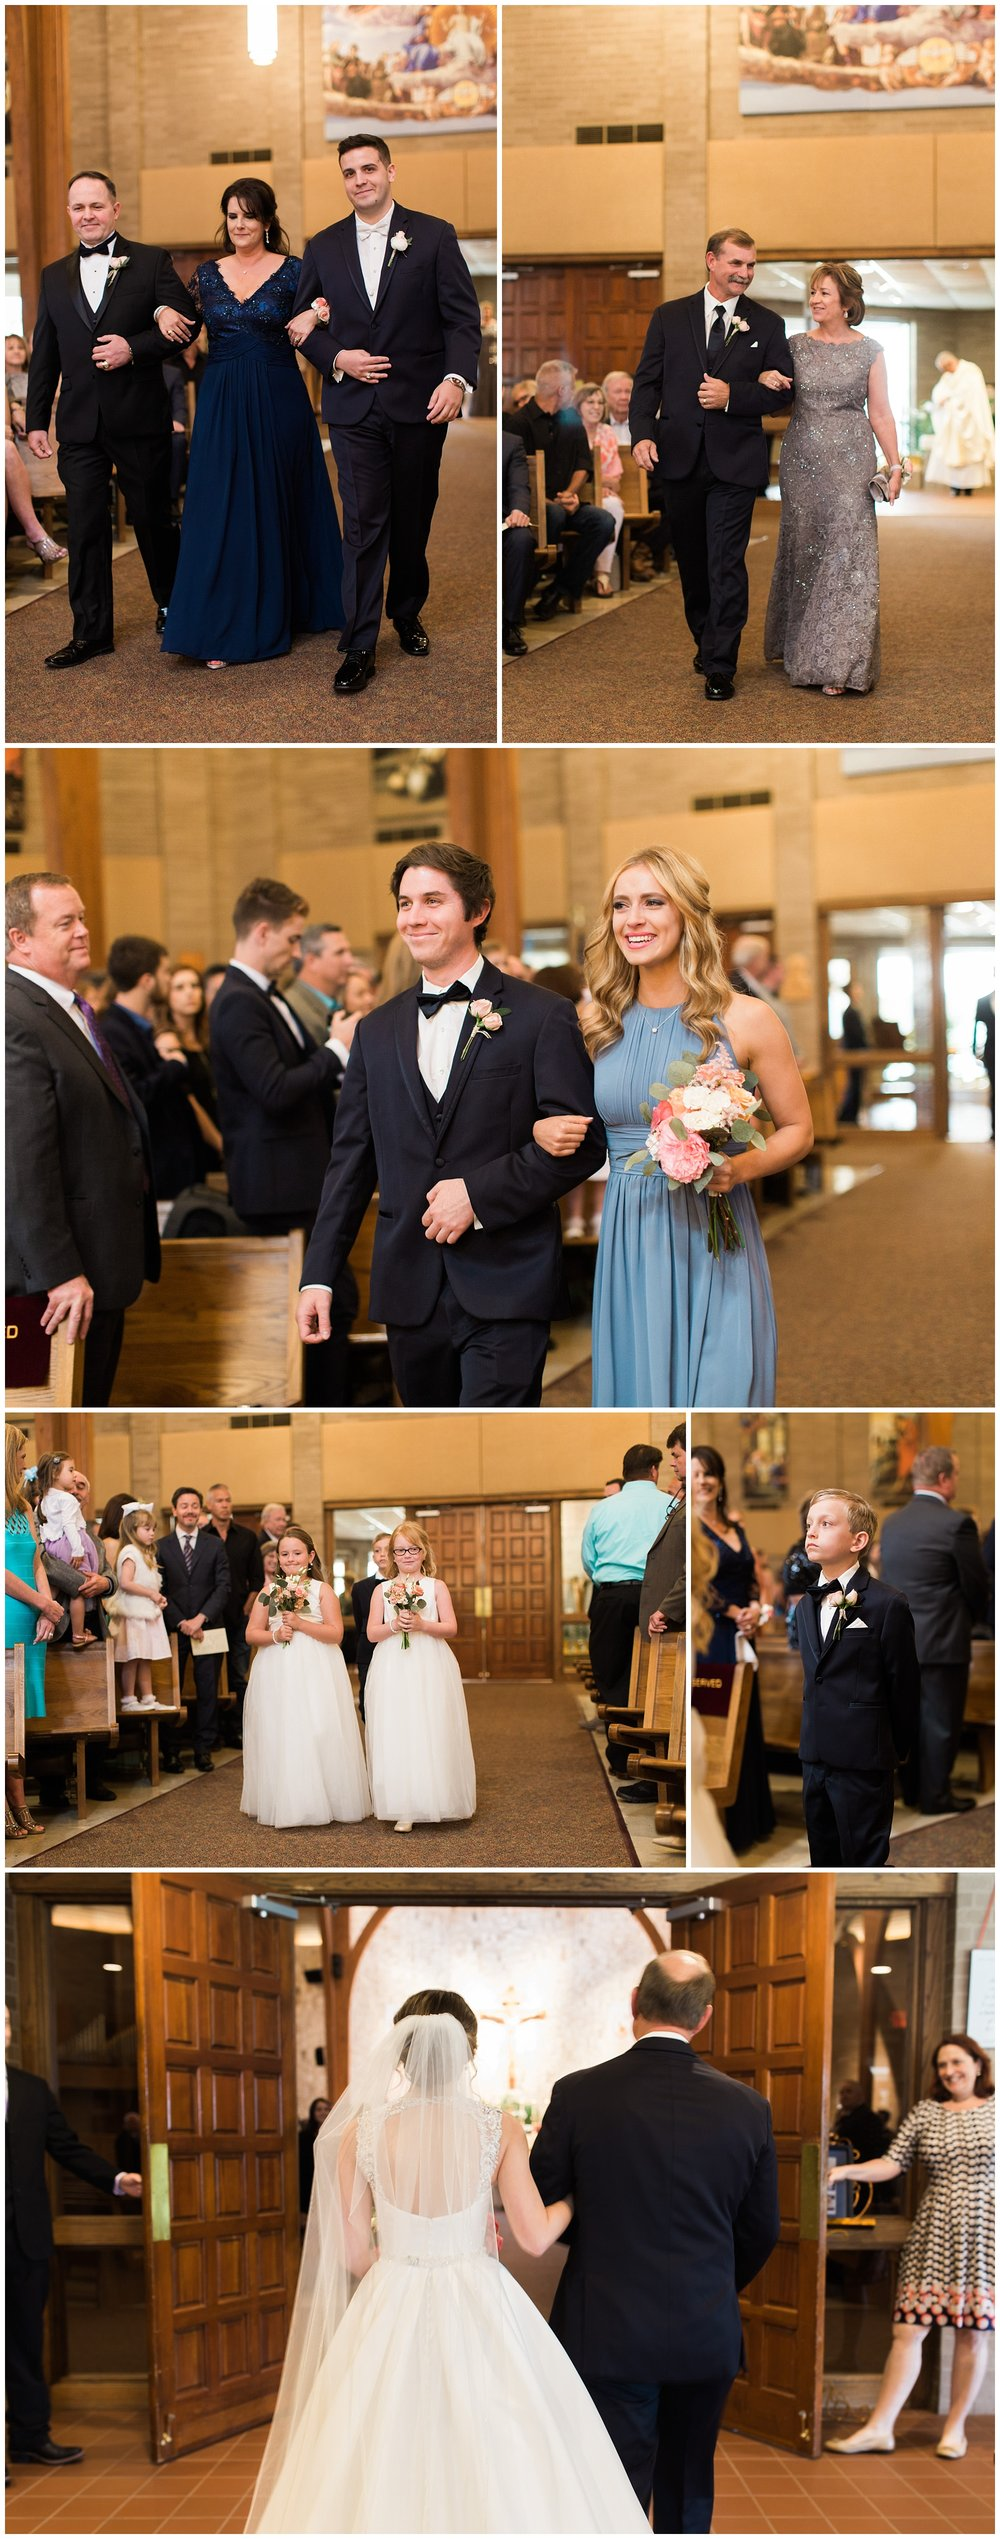 Brownstone_Reserve_Wedding_Kristina_Ross_Photography_0012.jpg